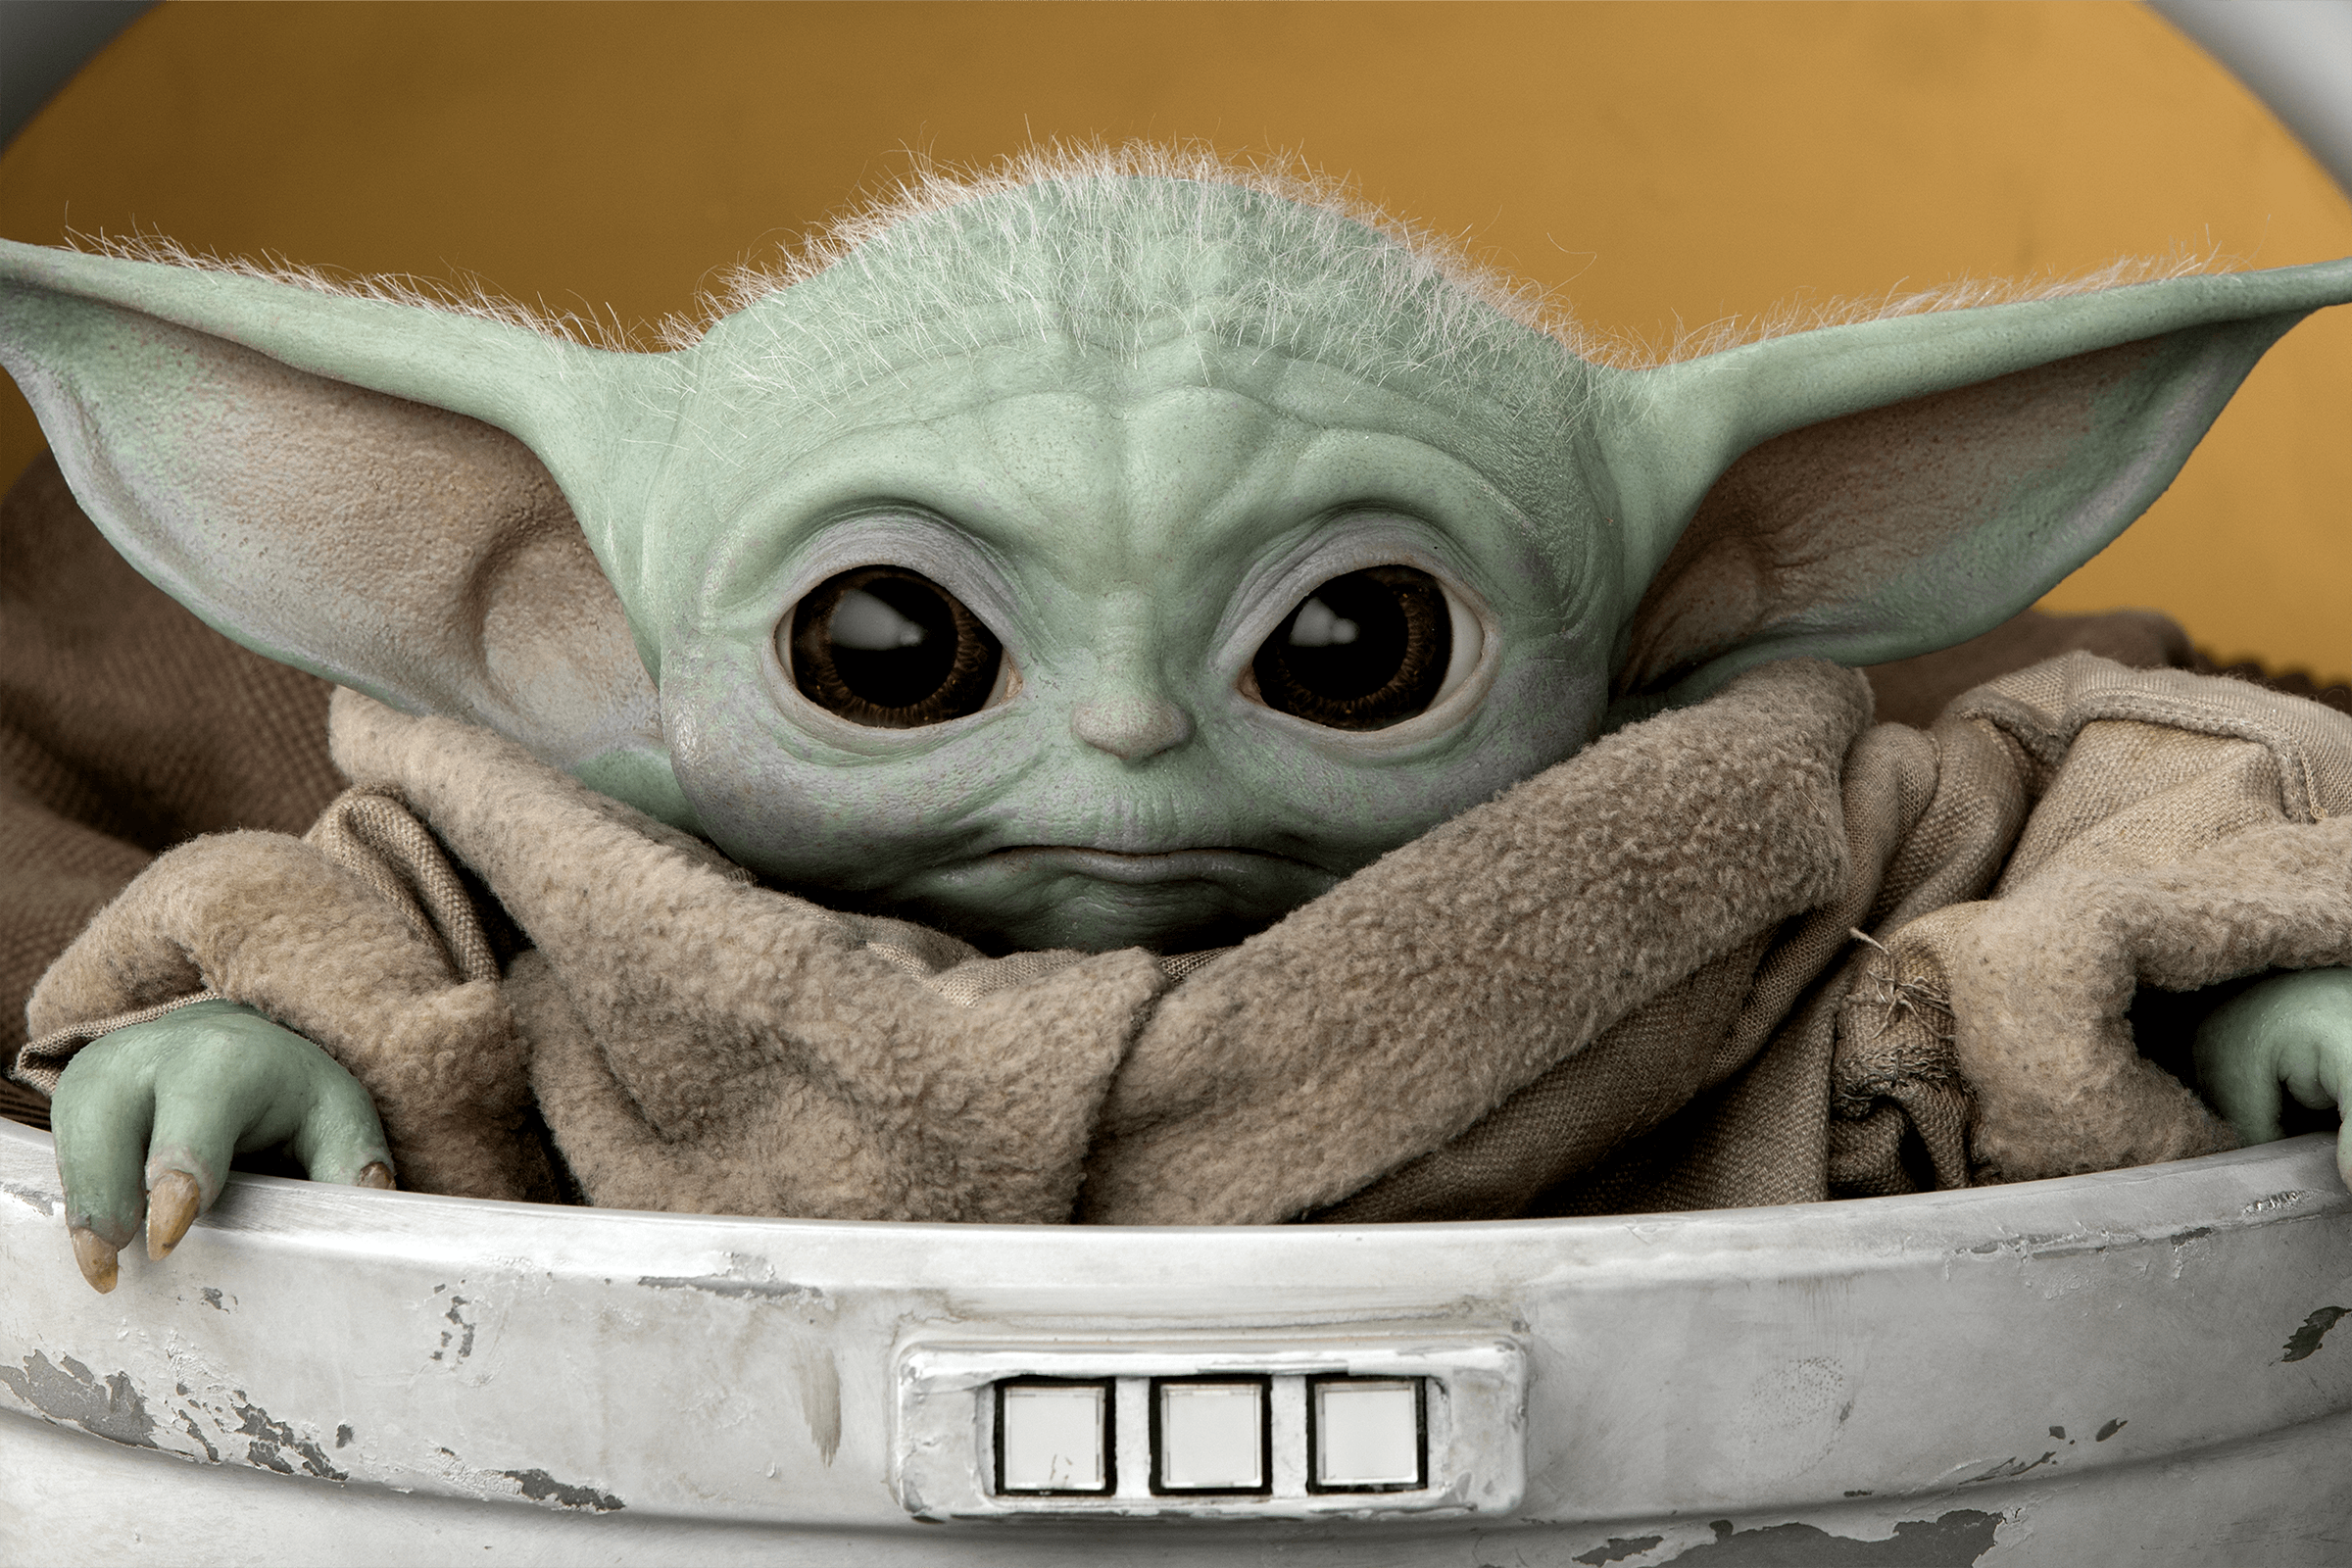 Baby Yoda Is Life Here S Why Design By Humans Blog Womp rat aims to immerse the listener in otherworldly soundscapes structured around groove. baby yoda is life here s why